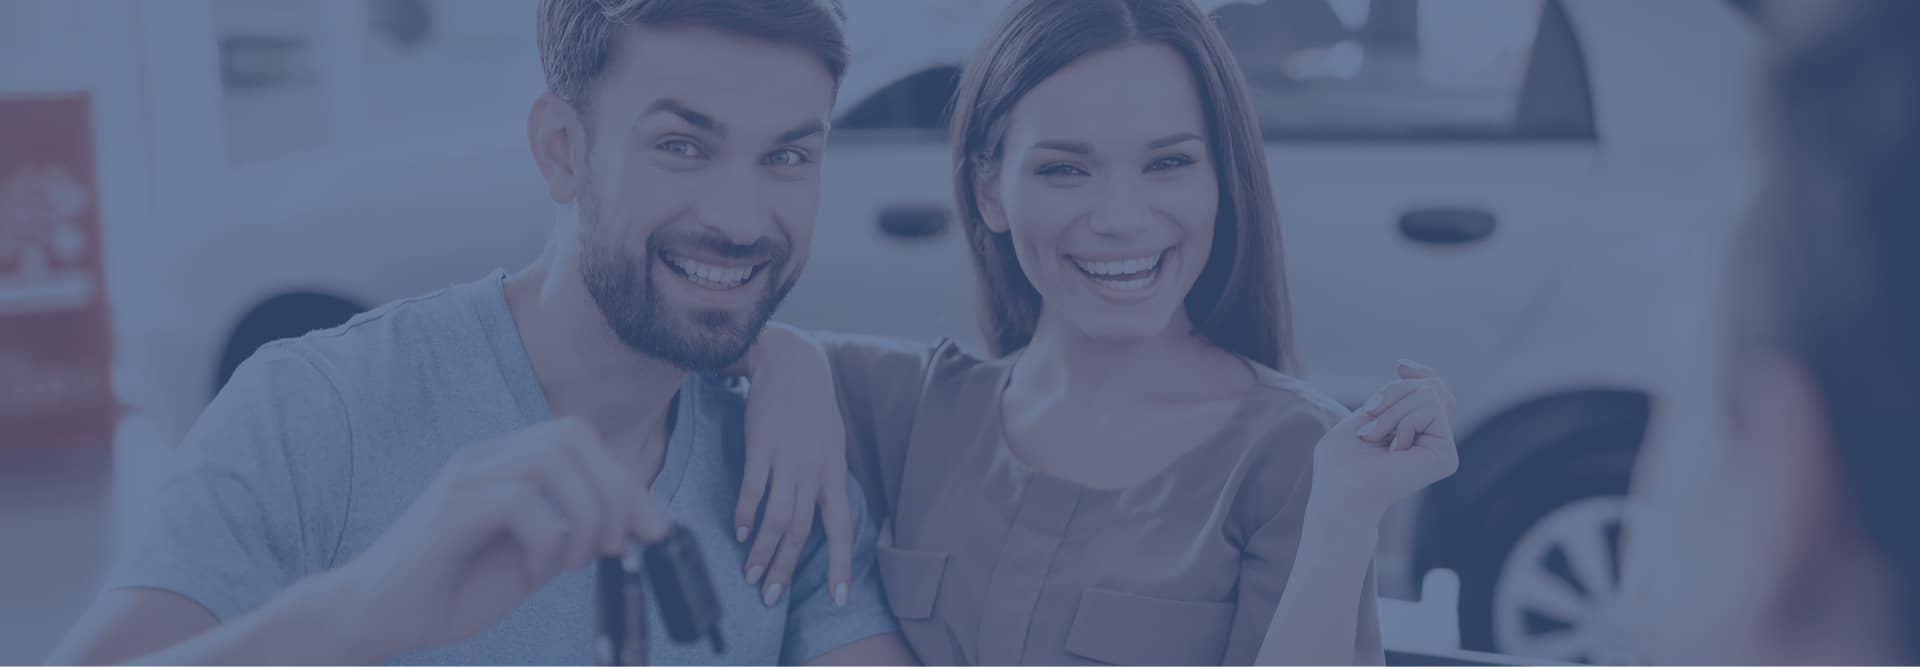 Man and Woman smiling while holding car keys